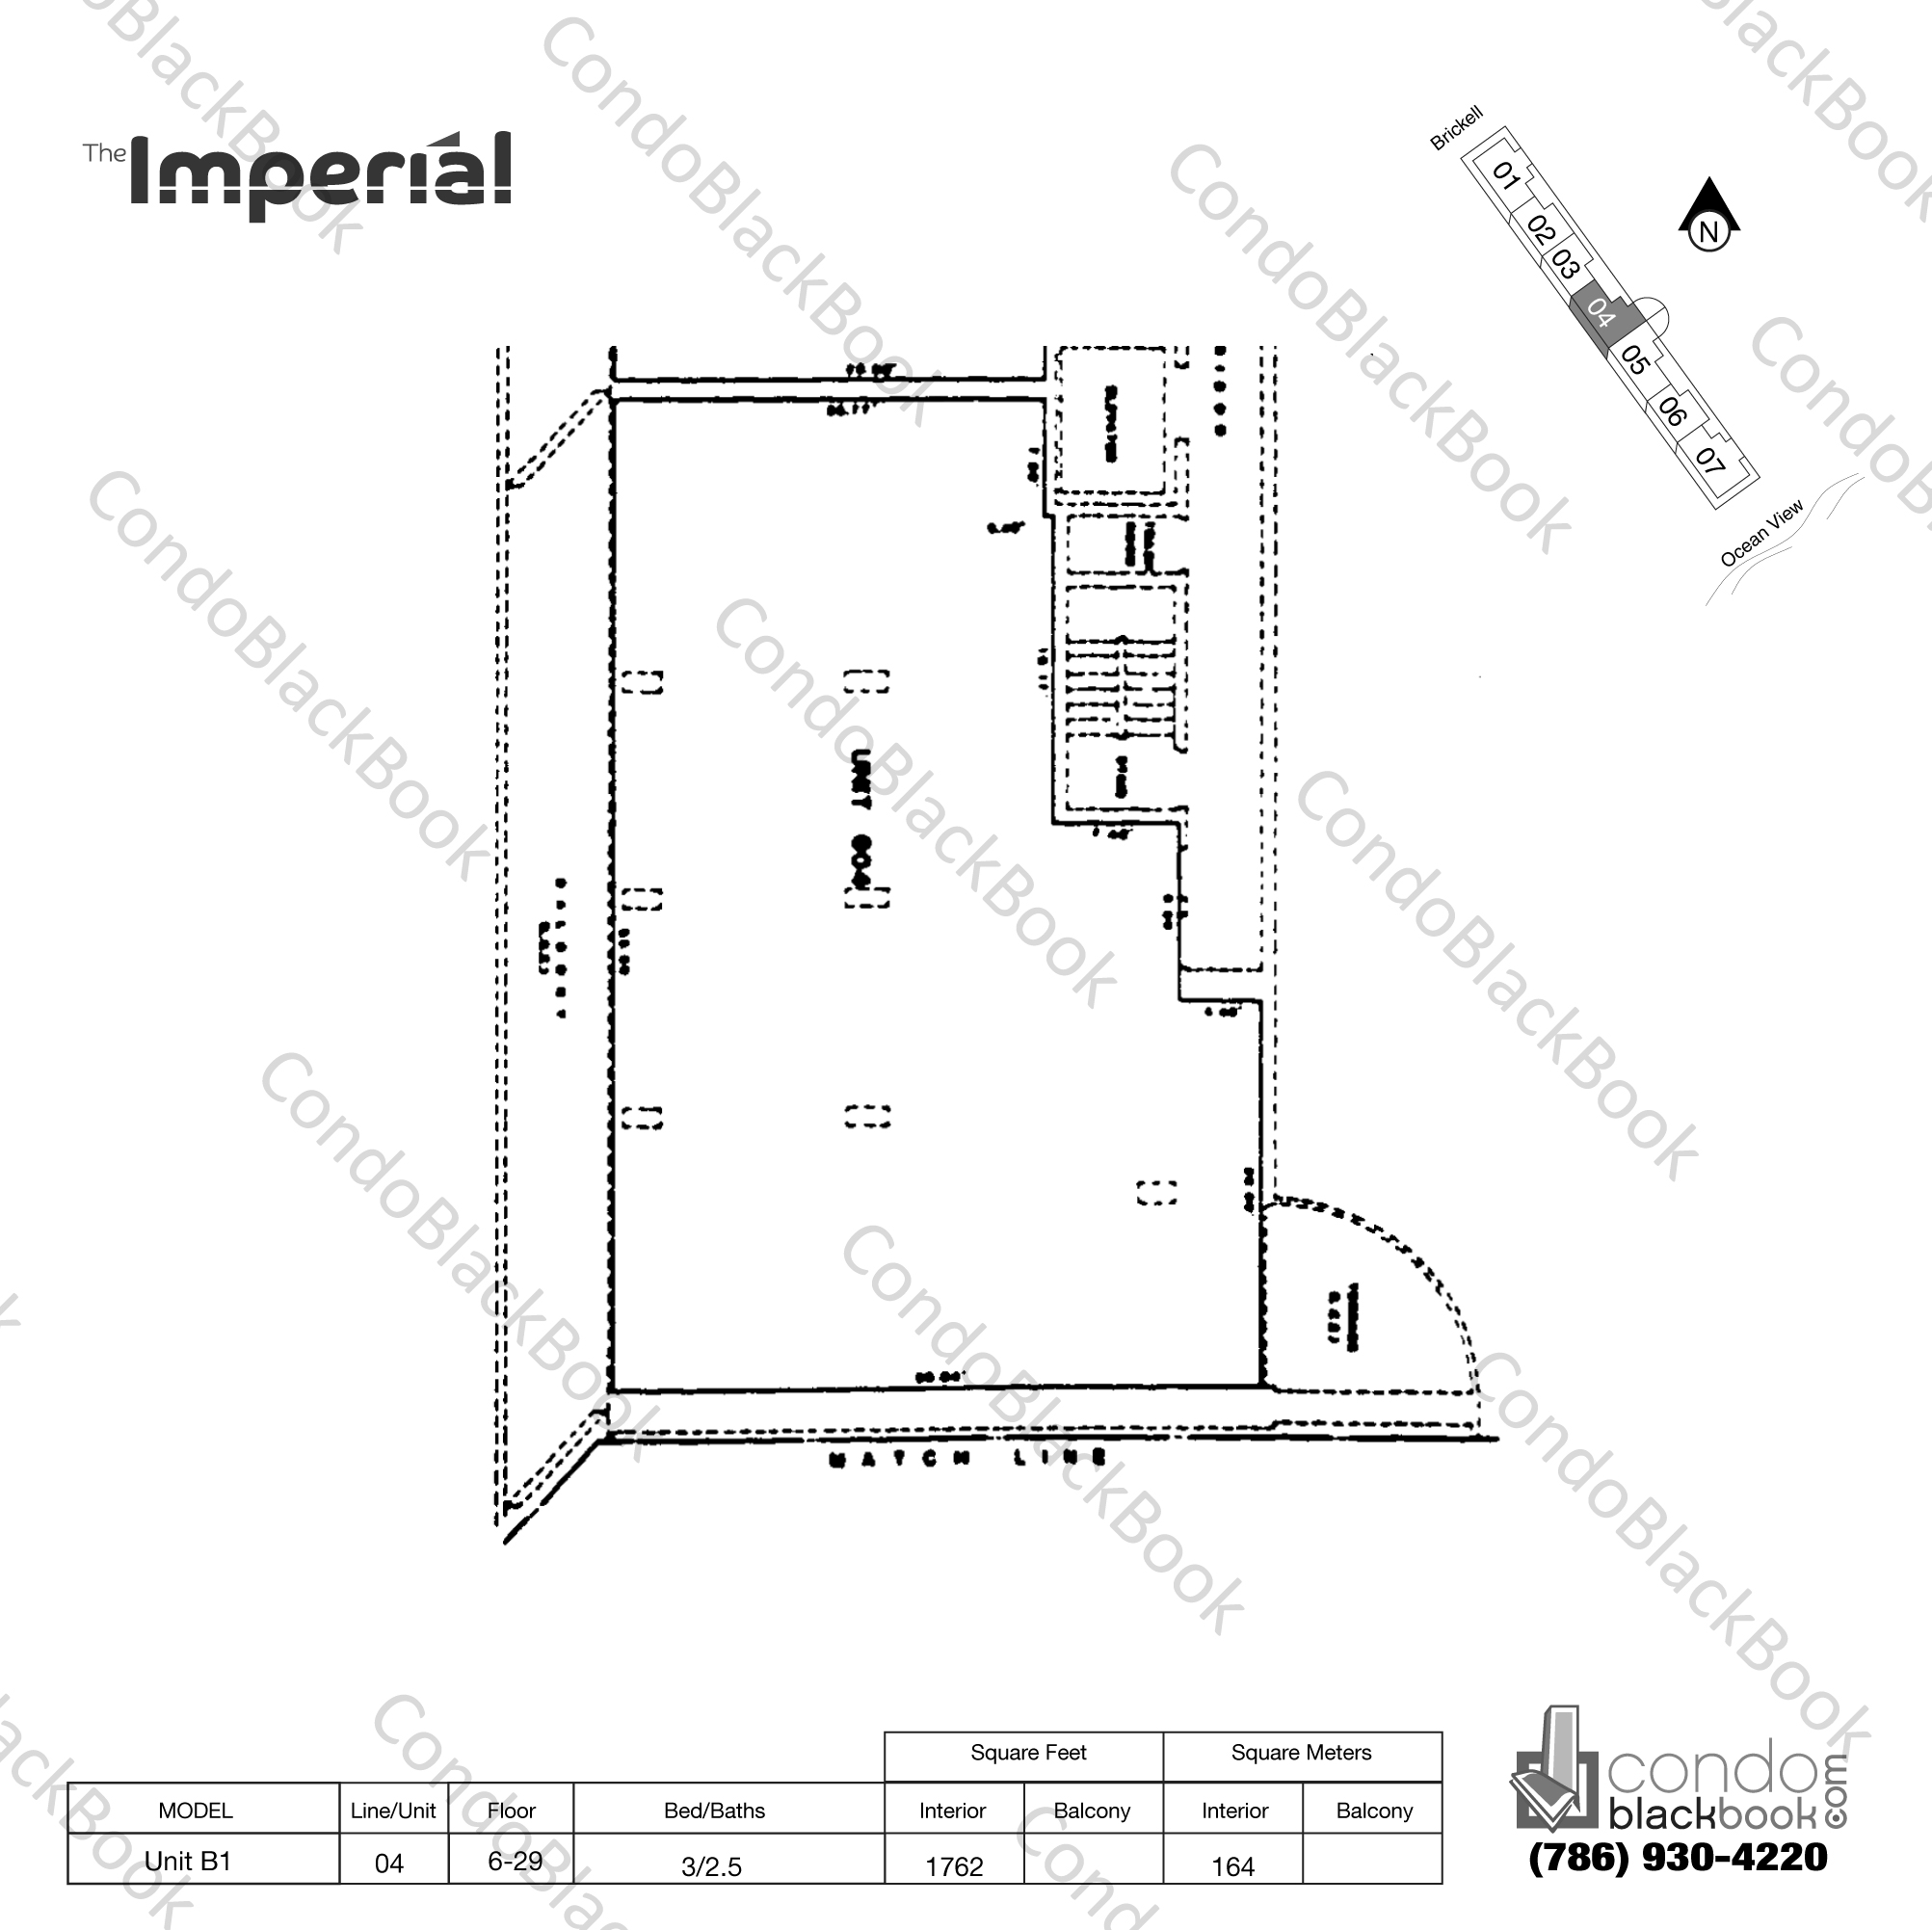 Floor plan for Imperial at Brickell Brickell Miami, model Unit B1, line 04, 3/2.5 bedrooms, 1762 sq ft